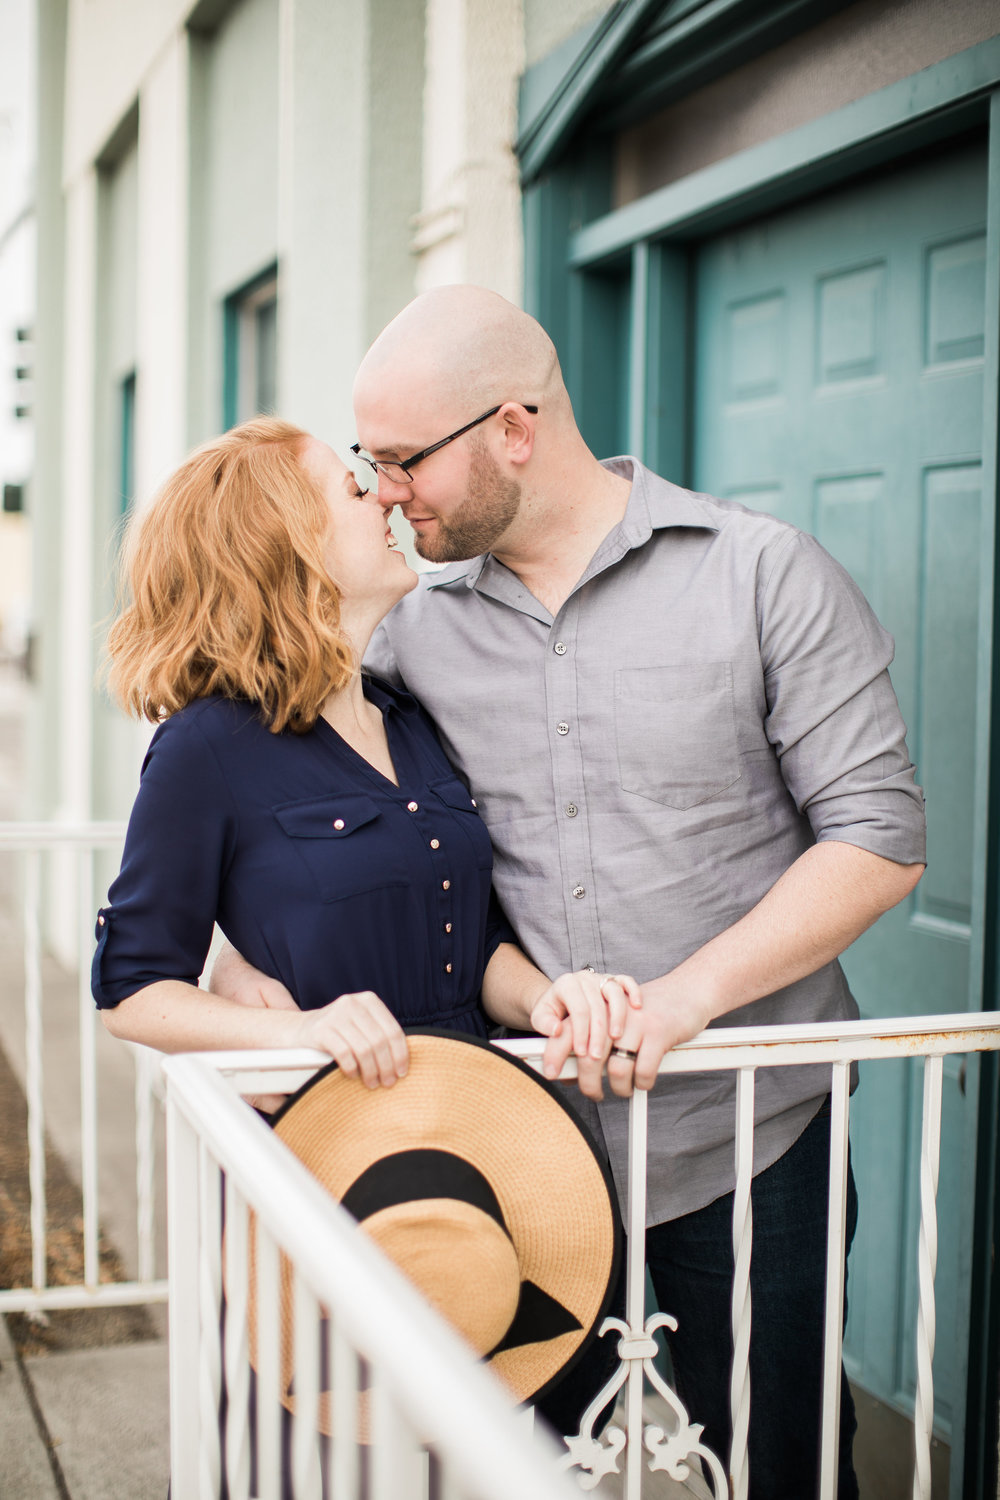 engagement photos of a couple done by brooks mcfadden photography